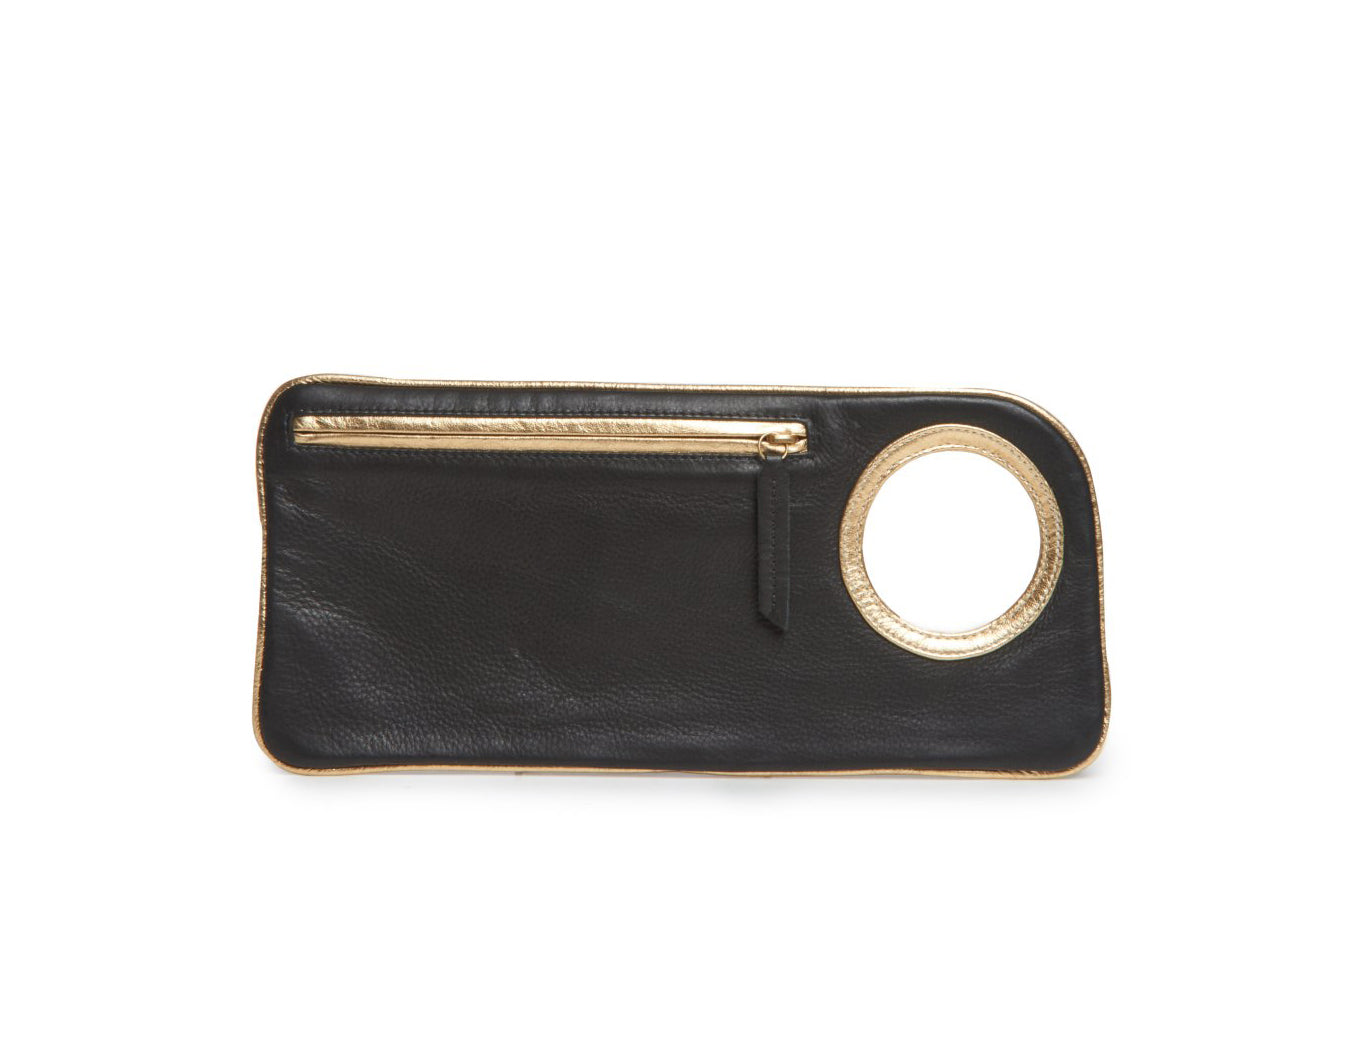 Hands-Free Bracelet Bag - Medium - Black/Gold - Italian Leather